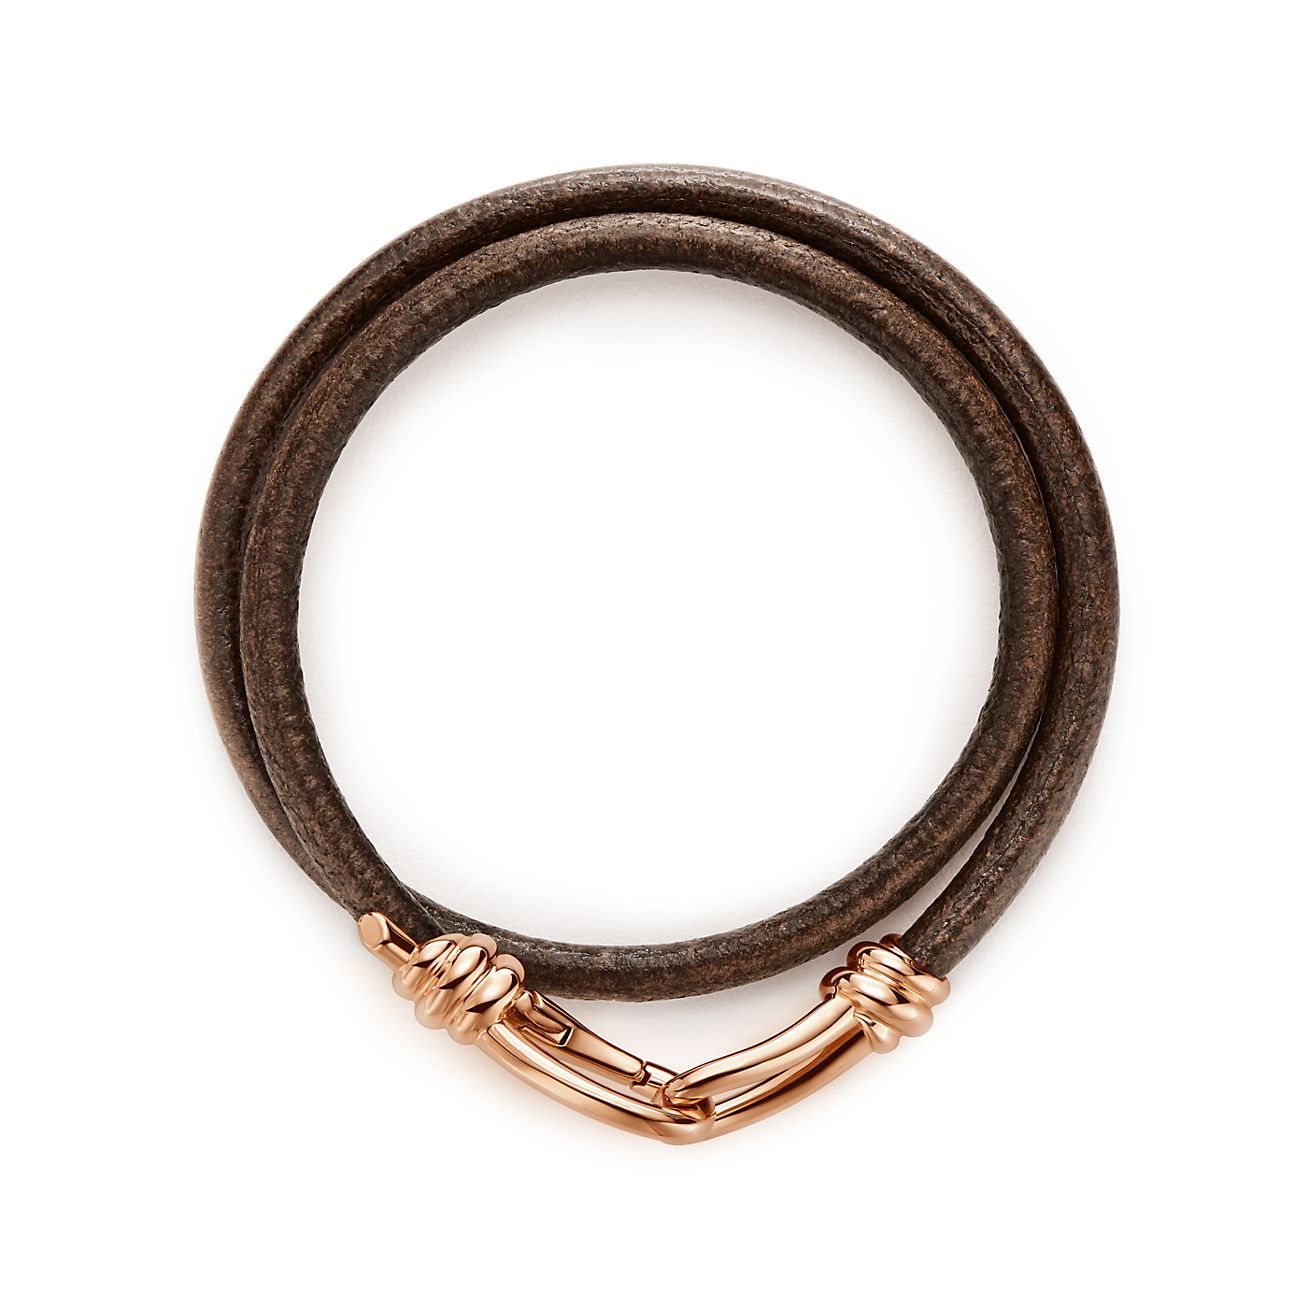 Paloma Picasso® Knot wrap bracelet of 18k rose gold and leather ...